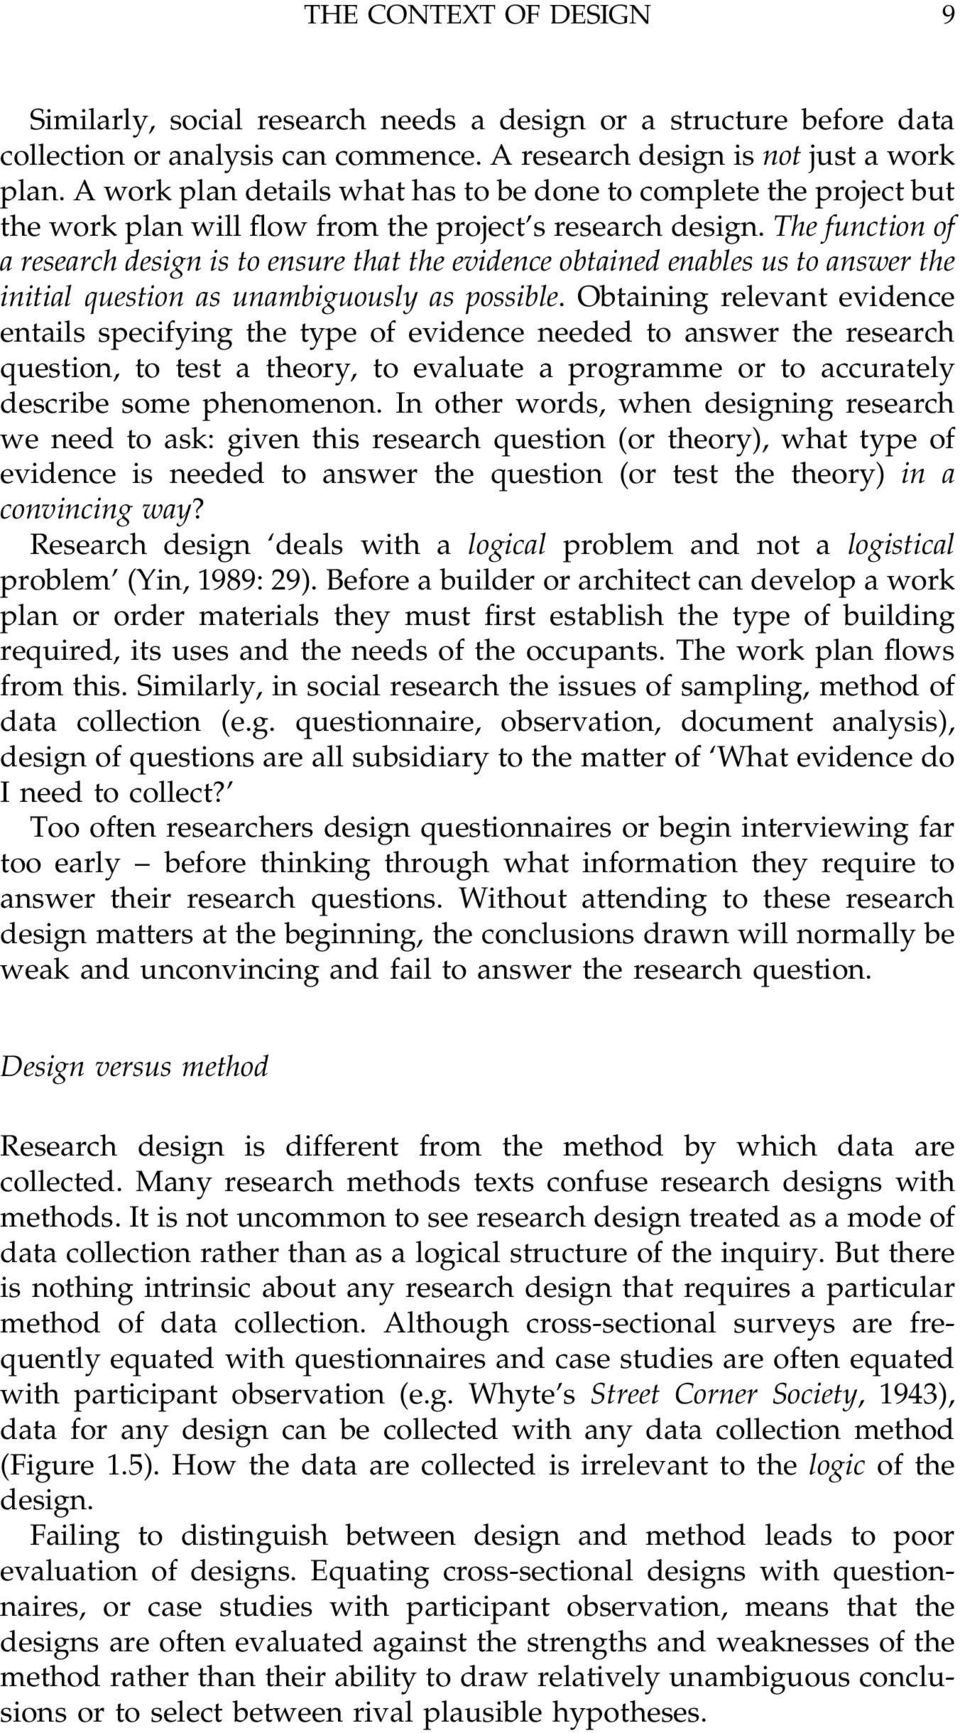 The function of a research design is to ensure that the evidence obtained enables us to answer the initial question as unambiguously as possible.